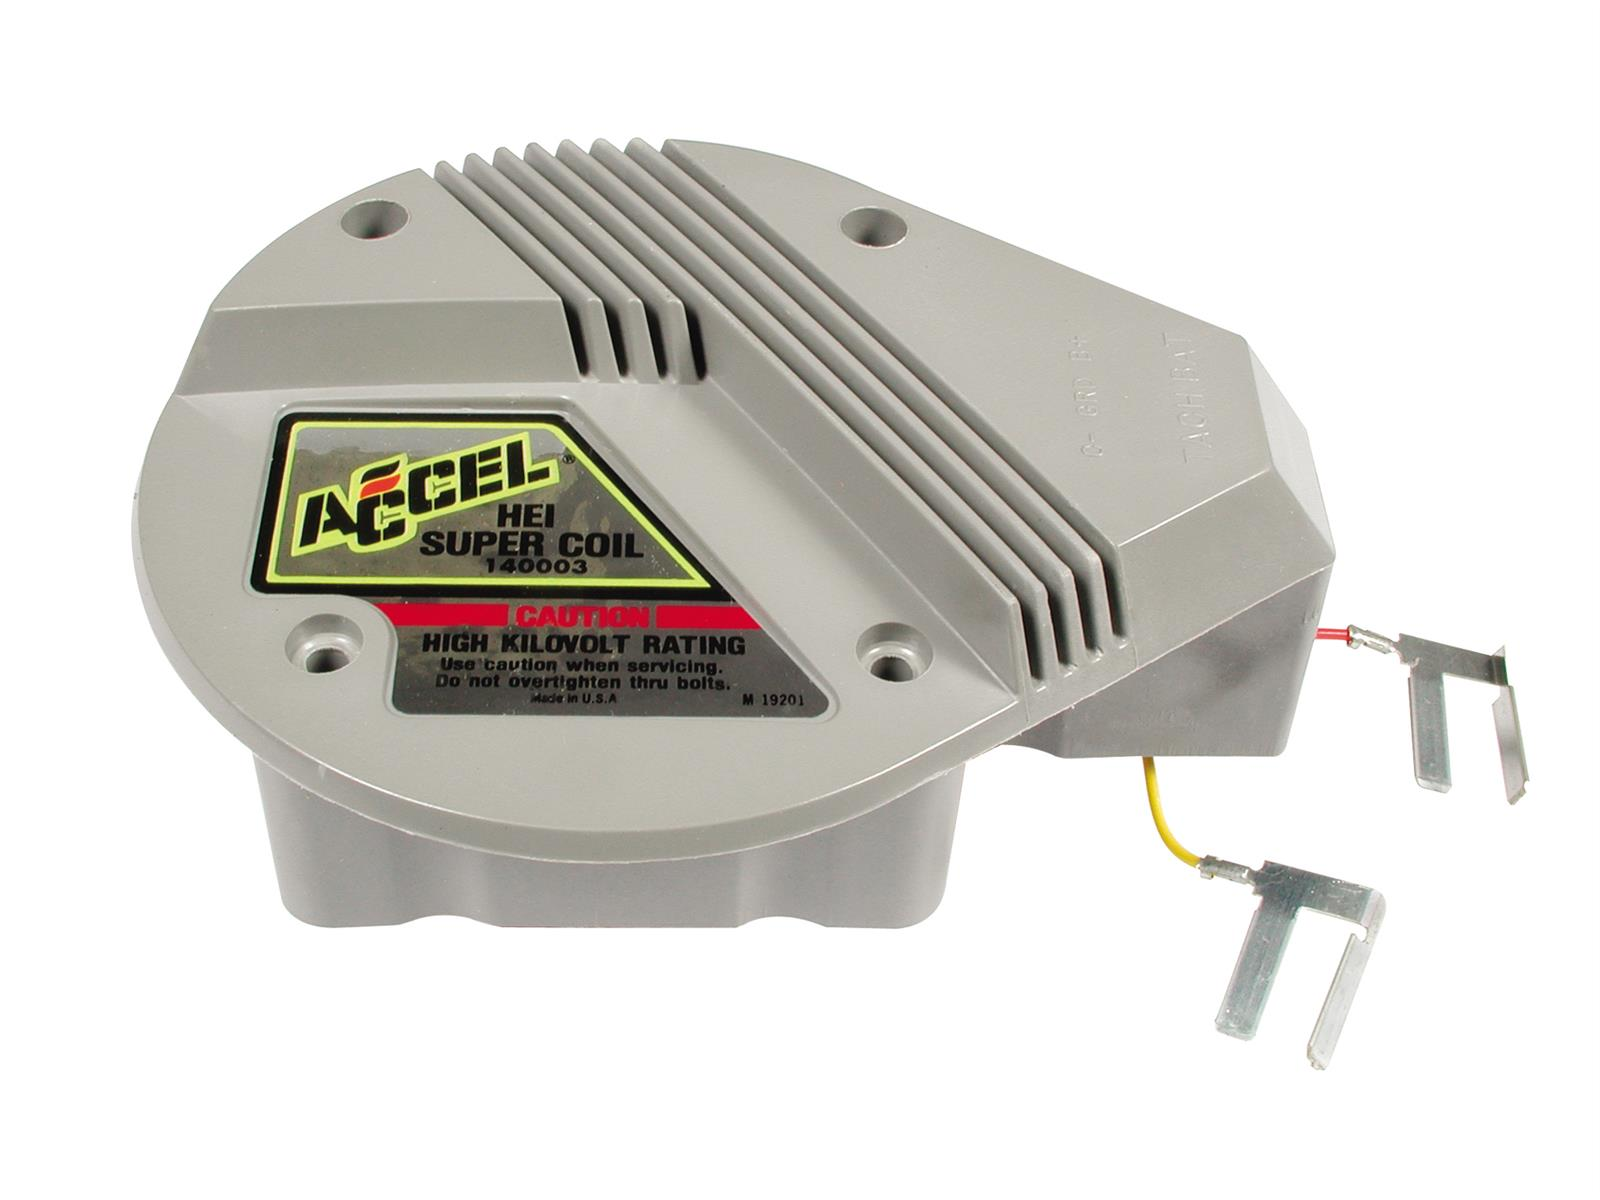 Accel Gm Hei In Cap Super Coils 140003 Free Shipping On Orders Internal Wiring Diagram Over 99 At Summit Racing